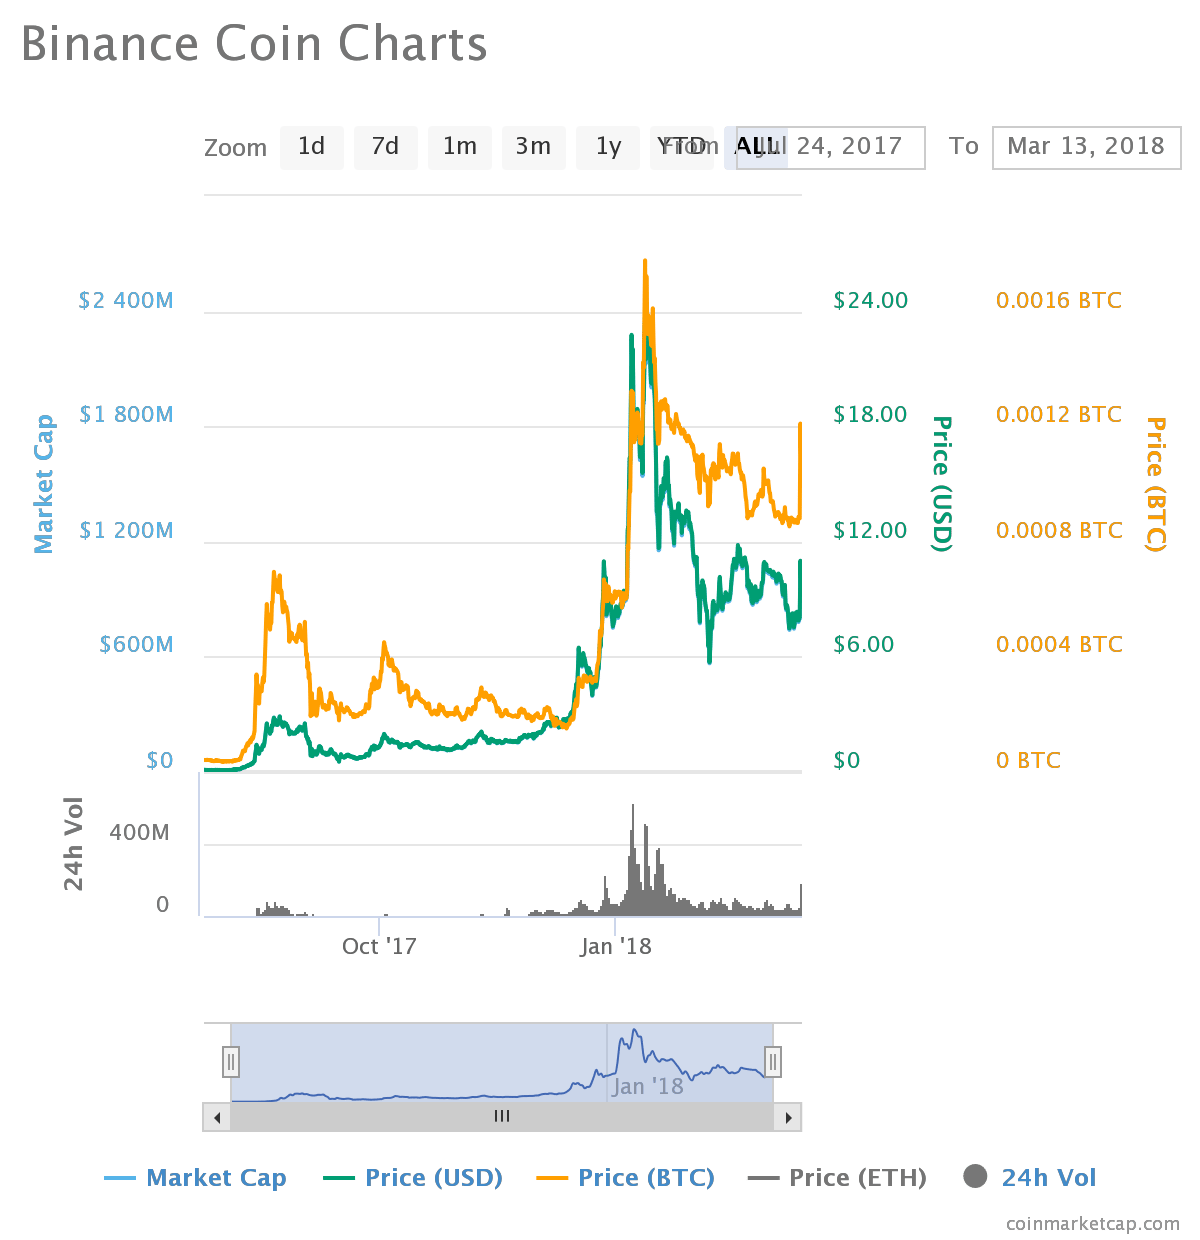 chart 8 - Binance Coin (BNB) - Price is Surging